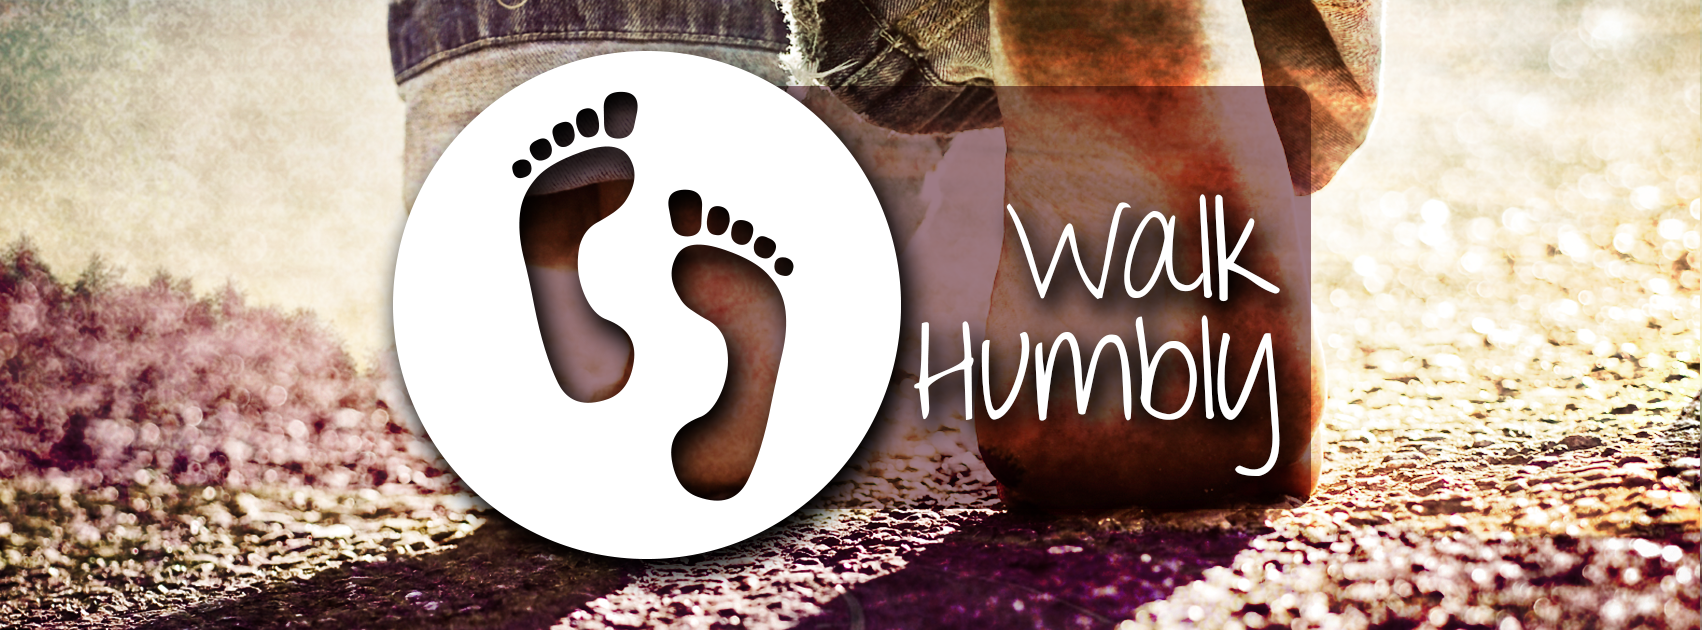 Walk Humbly, Part 3: It Takes Humility To Be In Community